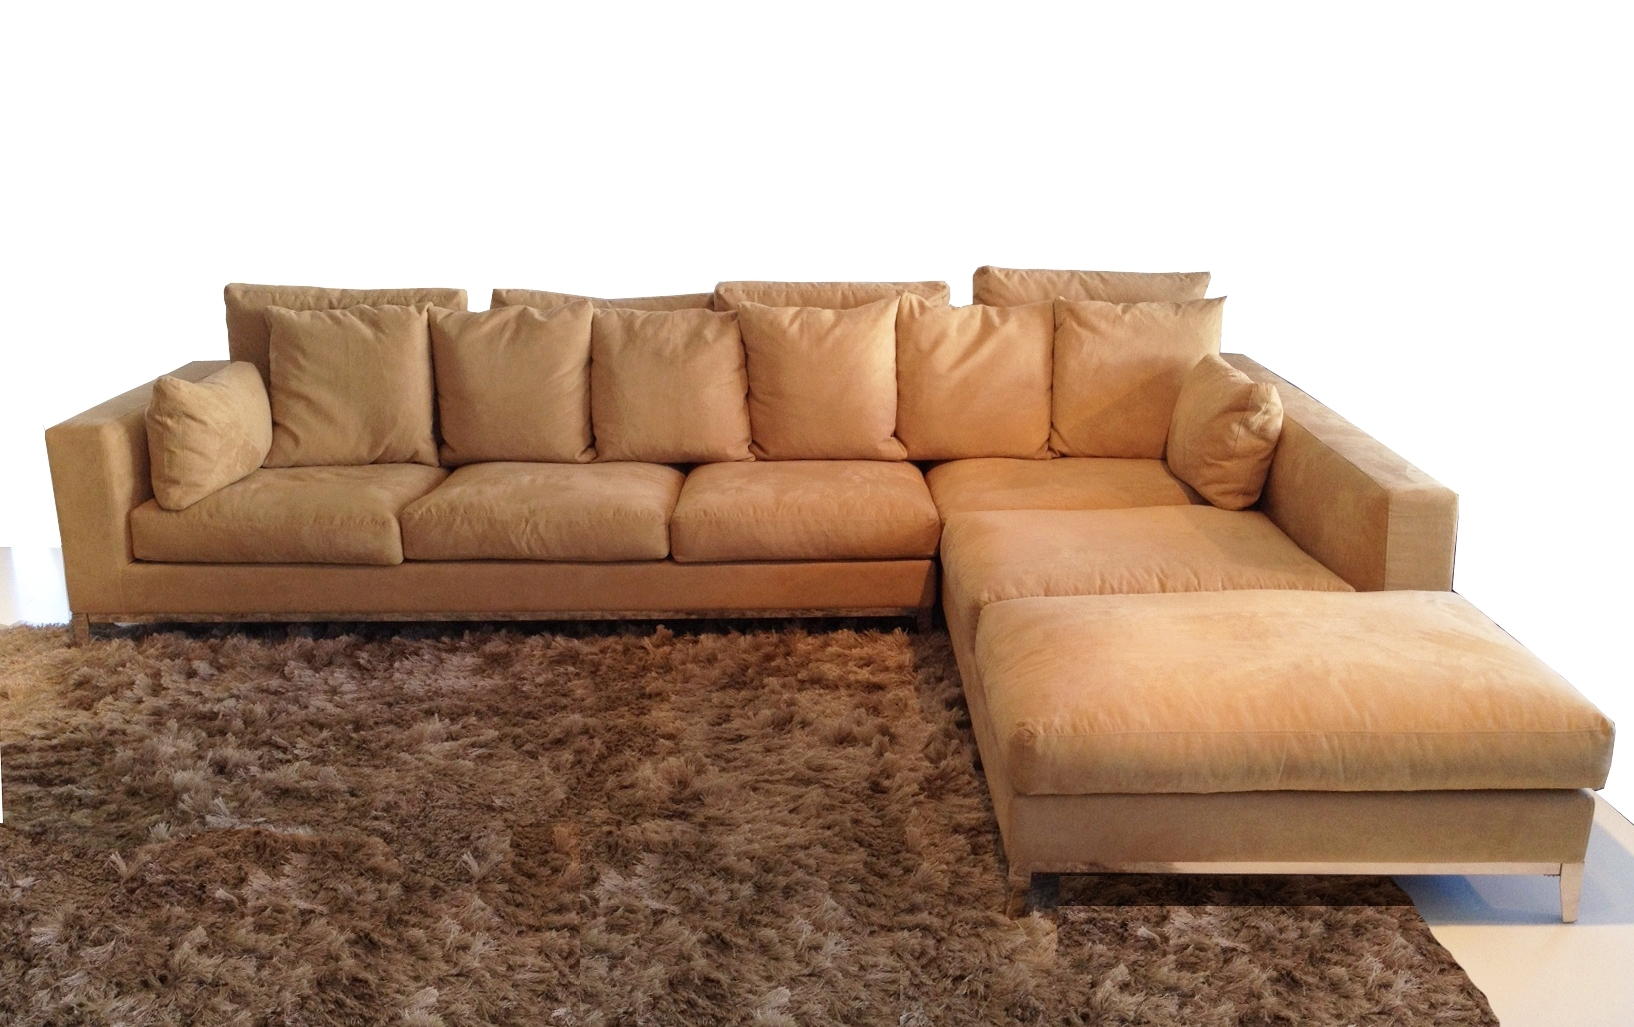 Newest Extra Large Sectional Sofas – Decofurnish Pertaining To Long Chaise Sofas (View 11 of 15)